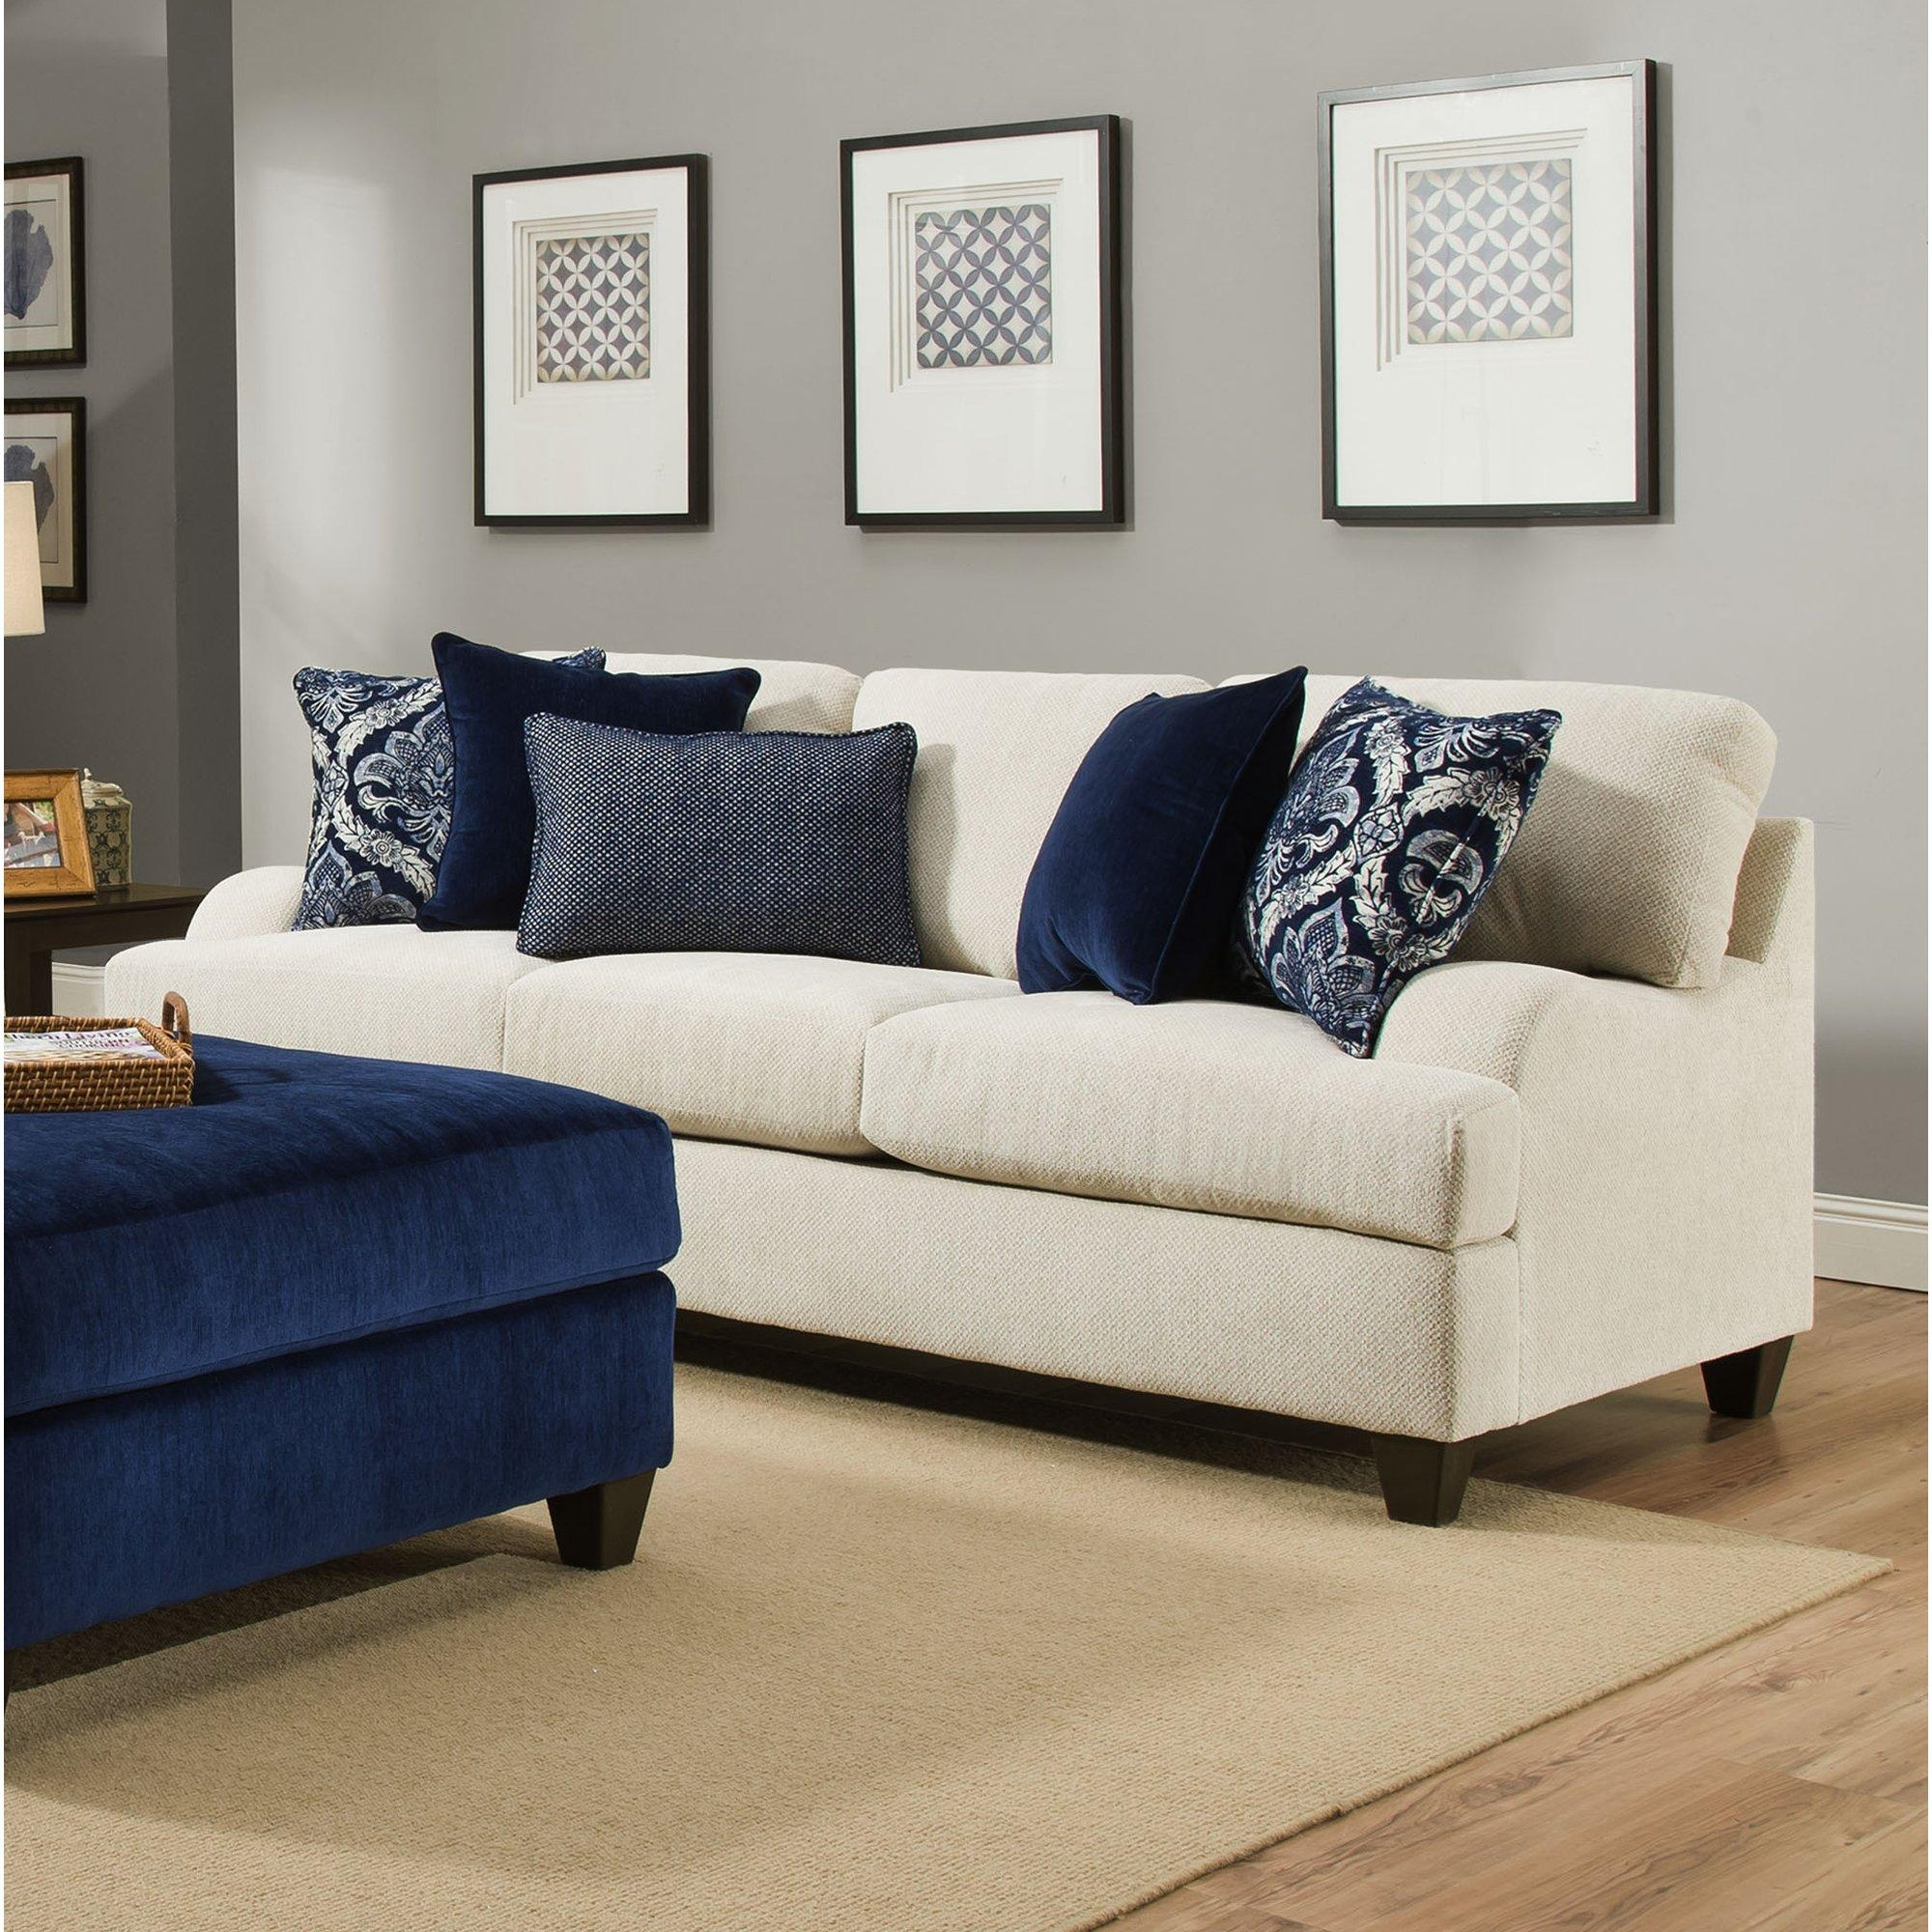 Queen Sleeper Sofa B Home Design | Goxbo For Commercial Sofas (Image 14 of 20)